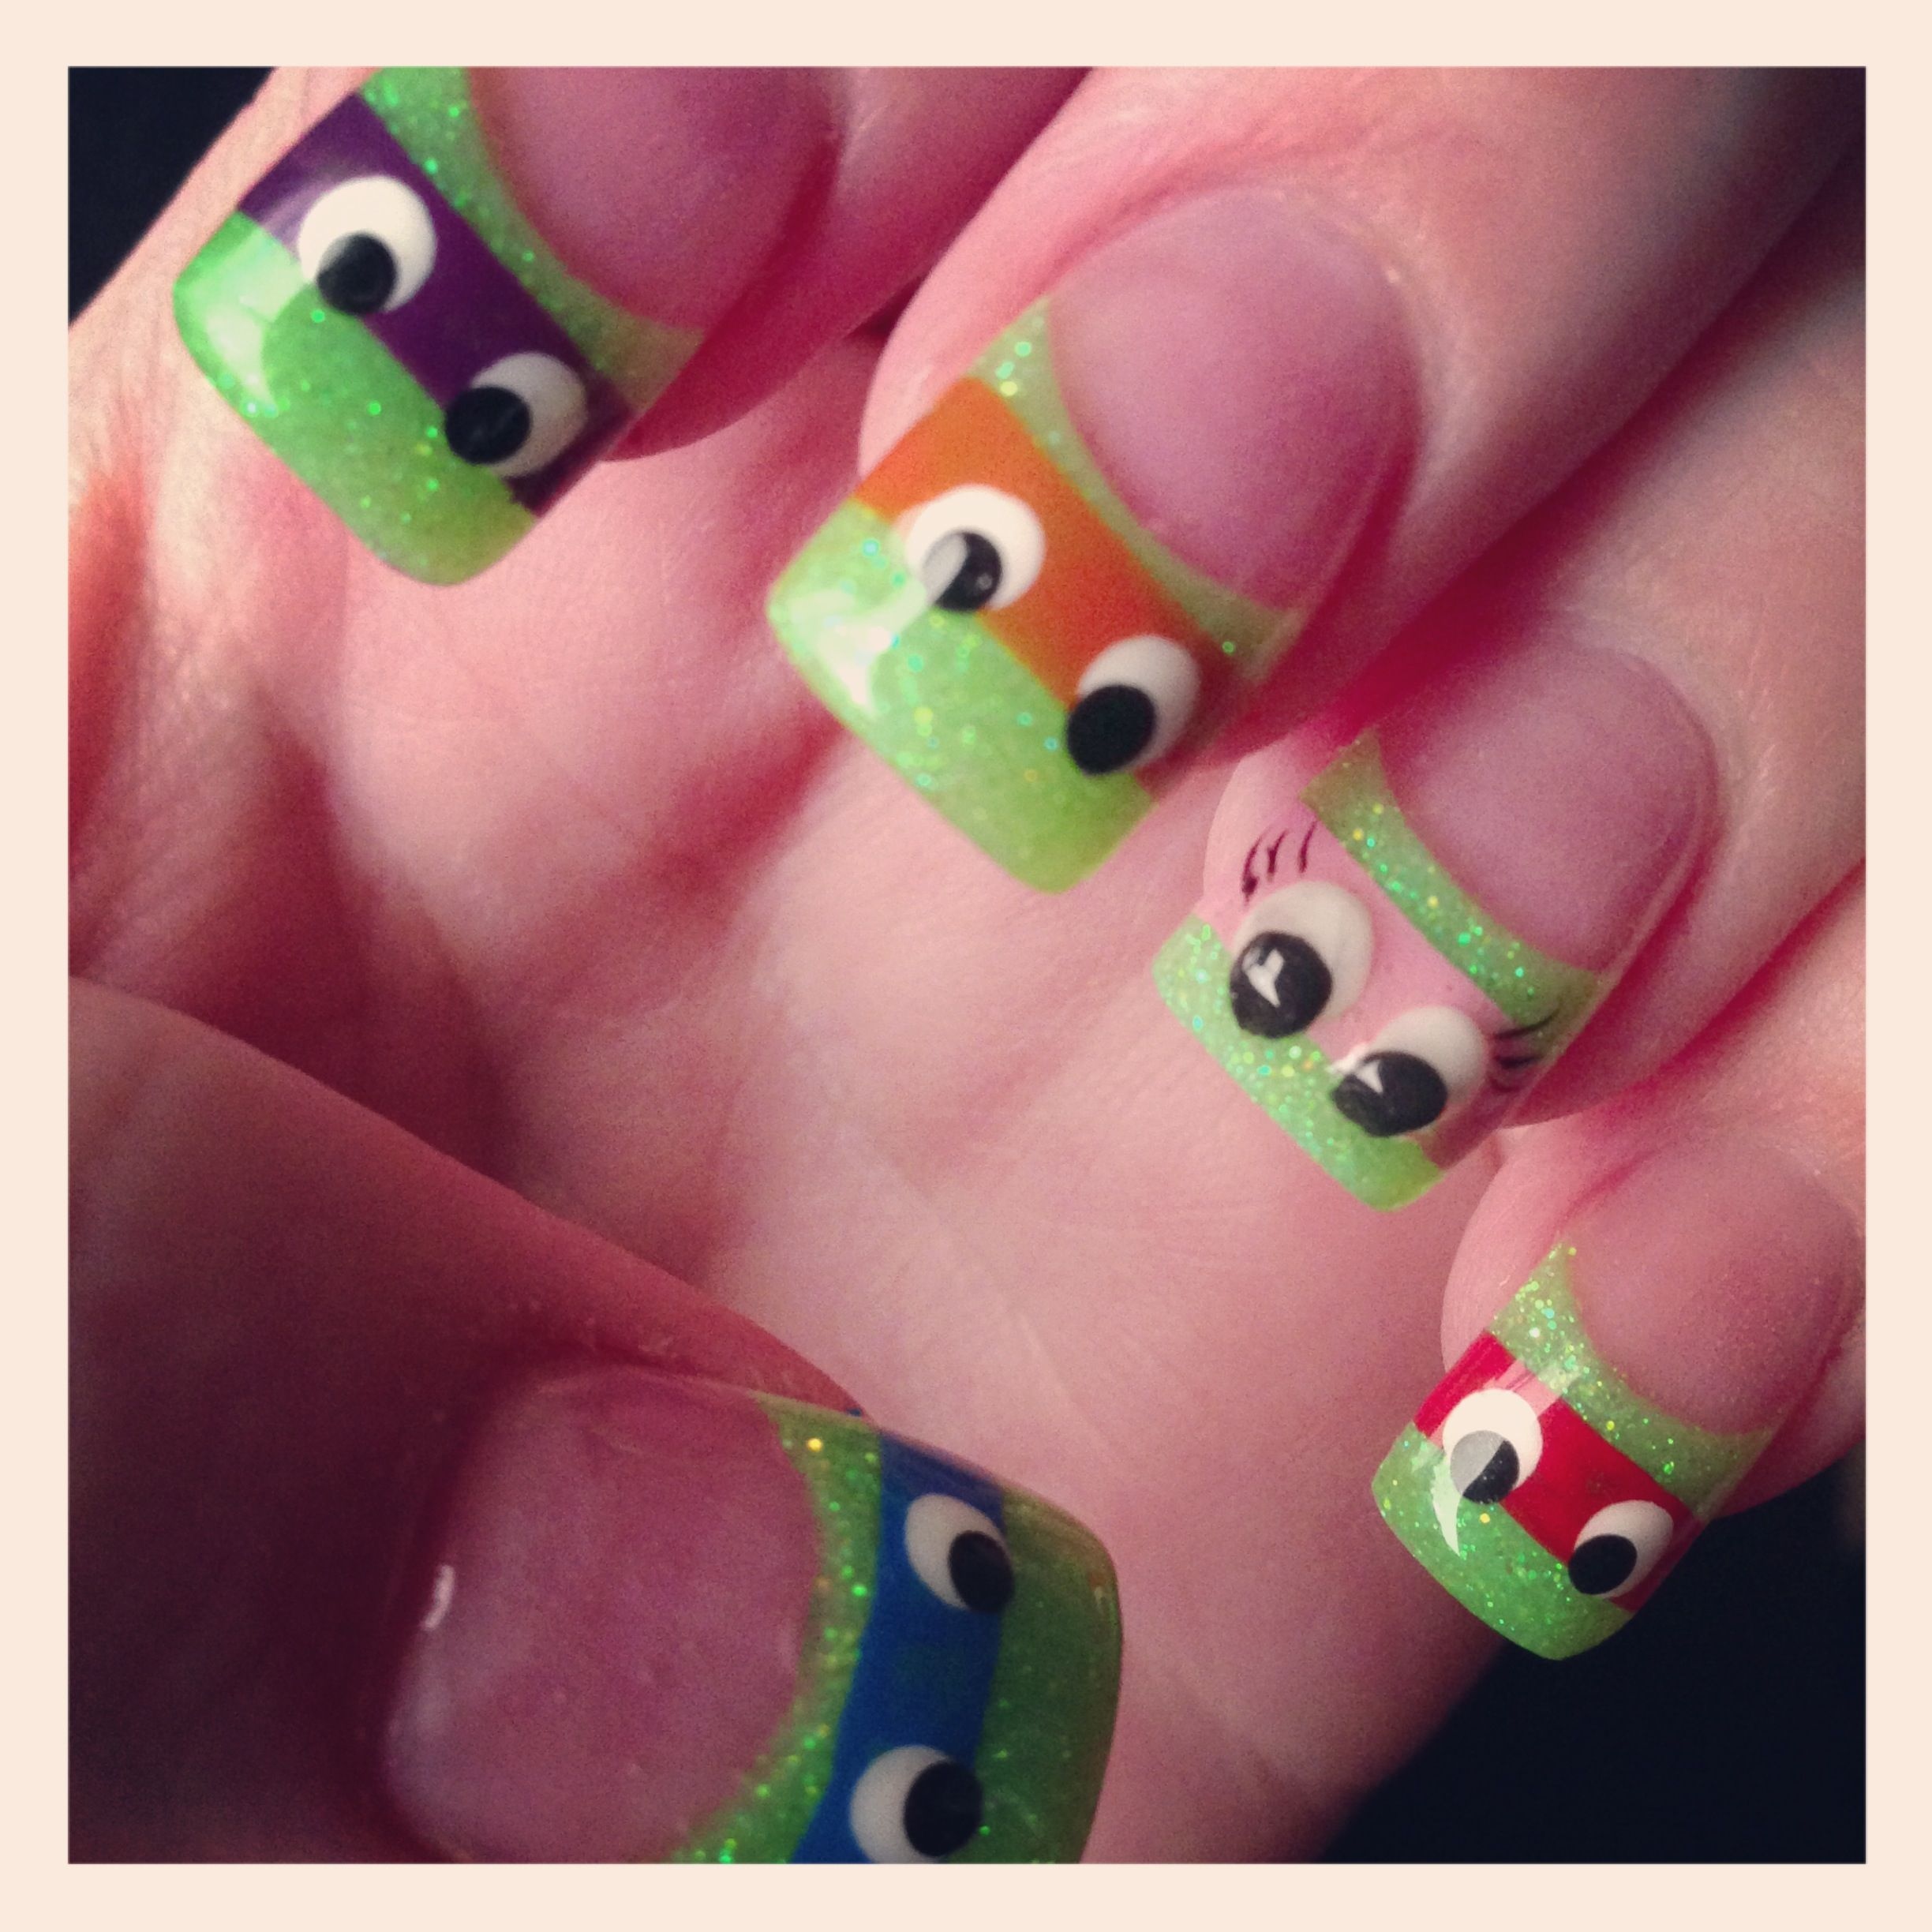 Ninja Turtle Nails With a little extra girl one added | Beauty ...